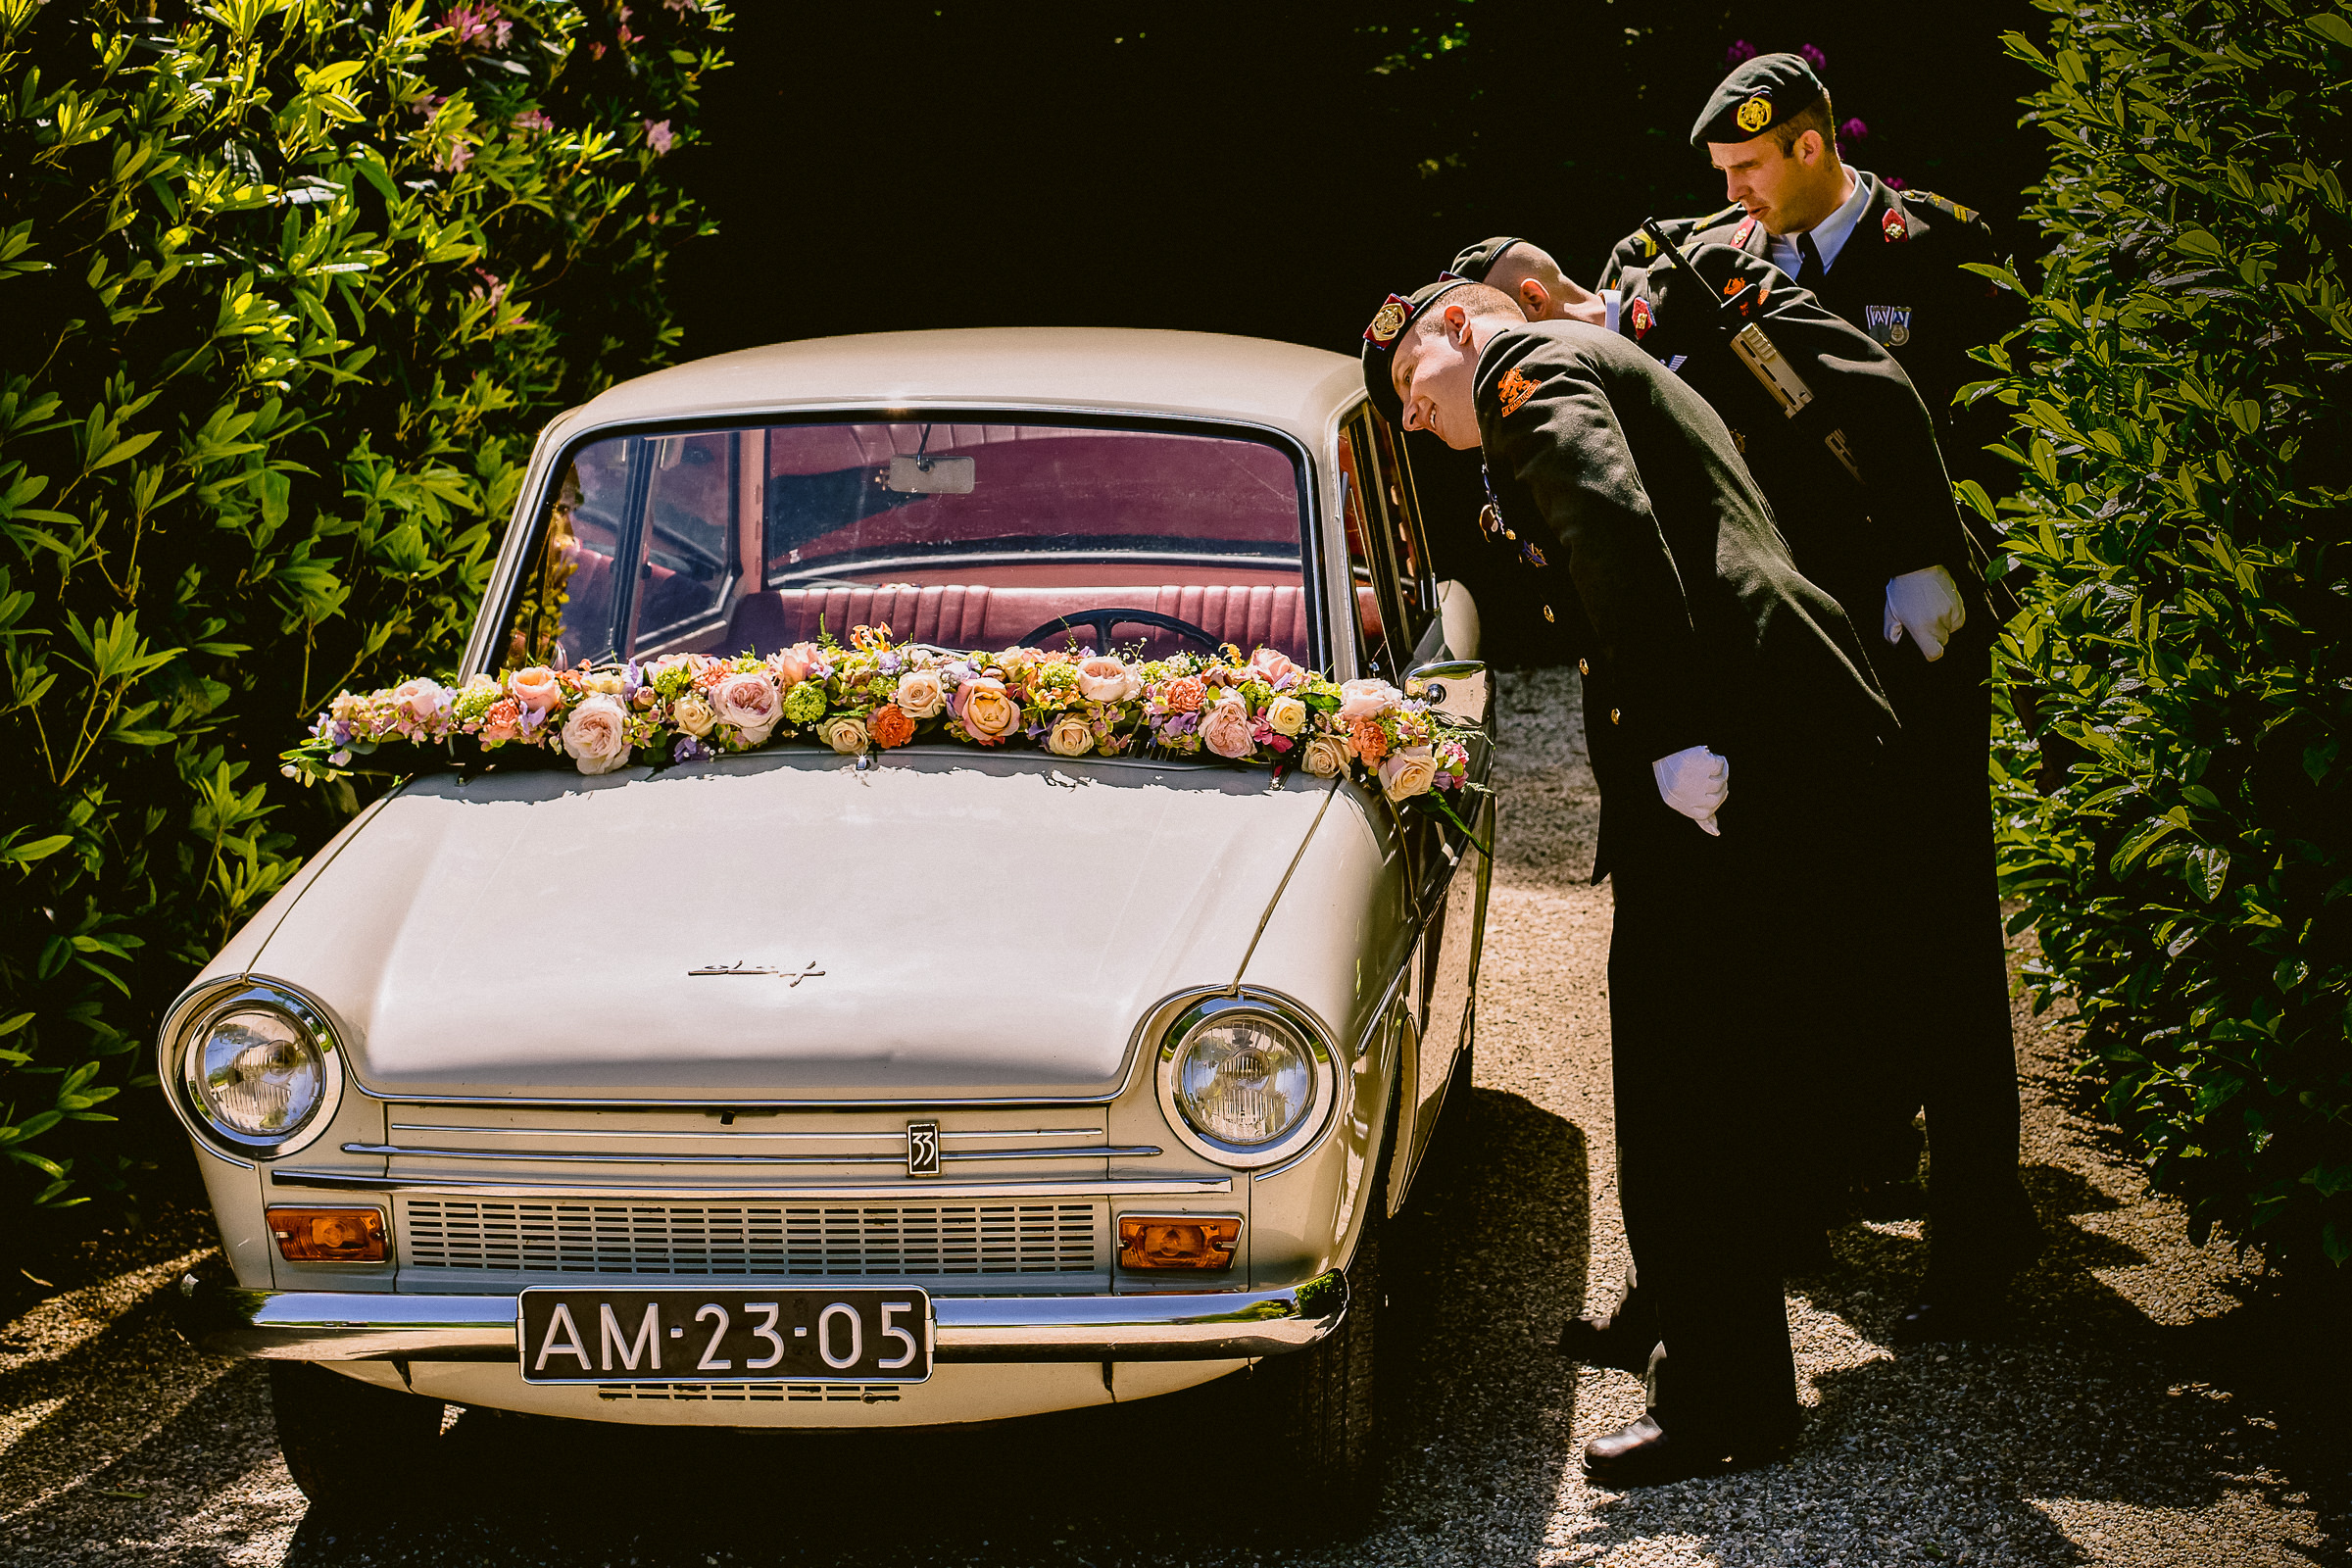 Uniformed men looking into vintage wedding car decorated with flowers - photo by Peter van der Lingen Wedding Photography